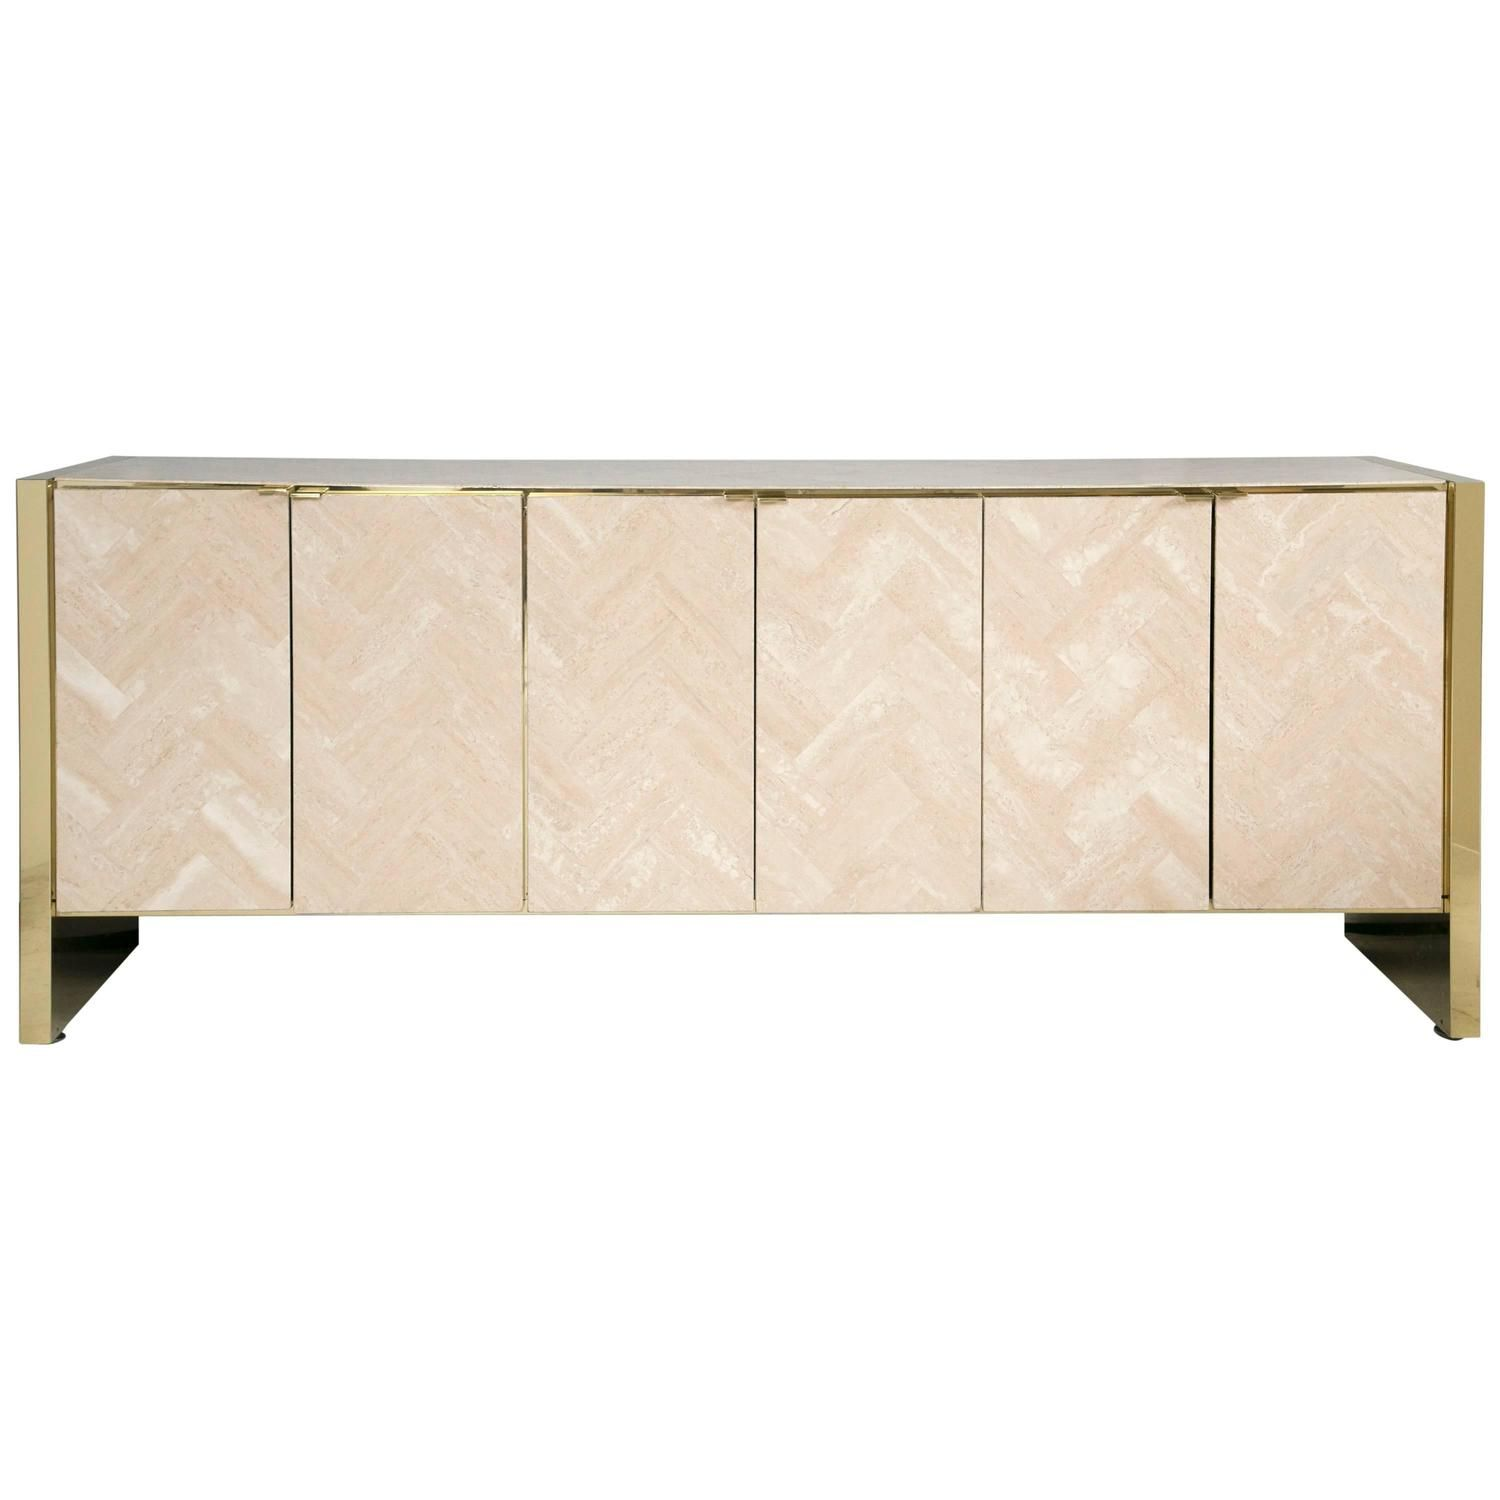 Polished Herringboned Travertine And Brass Credenza By Ello Furniture